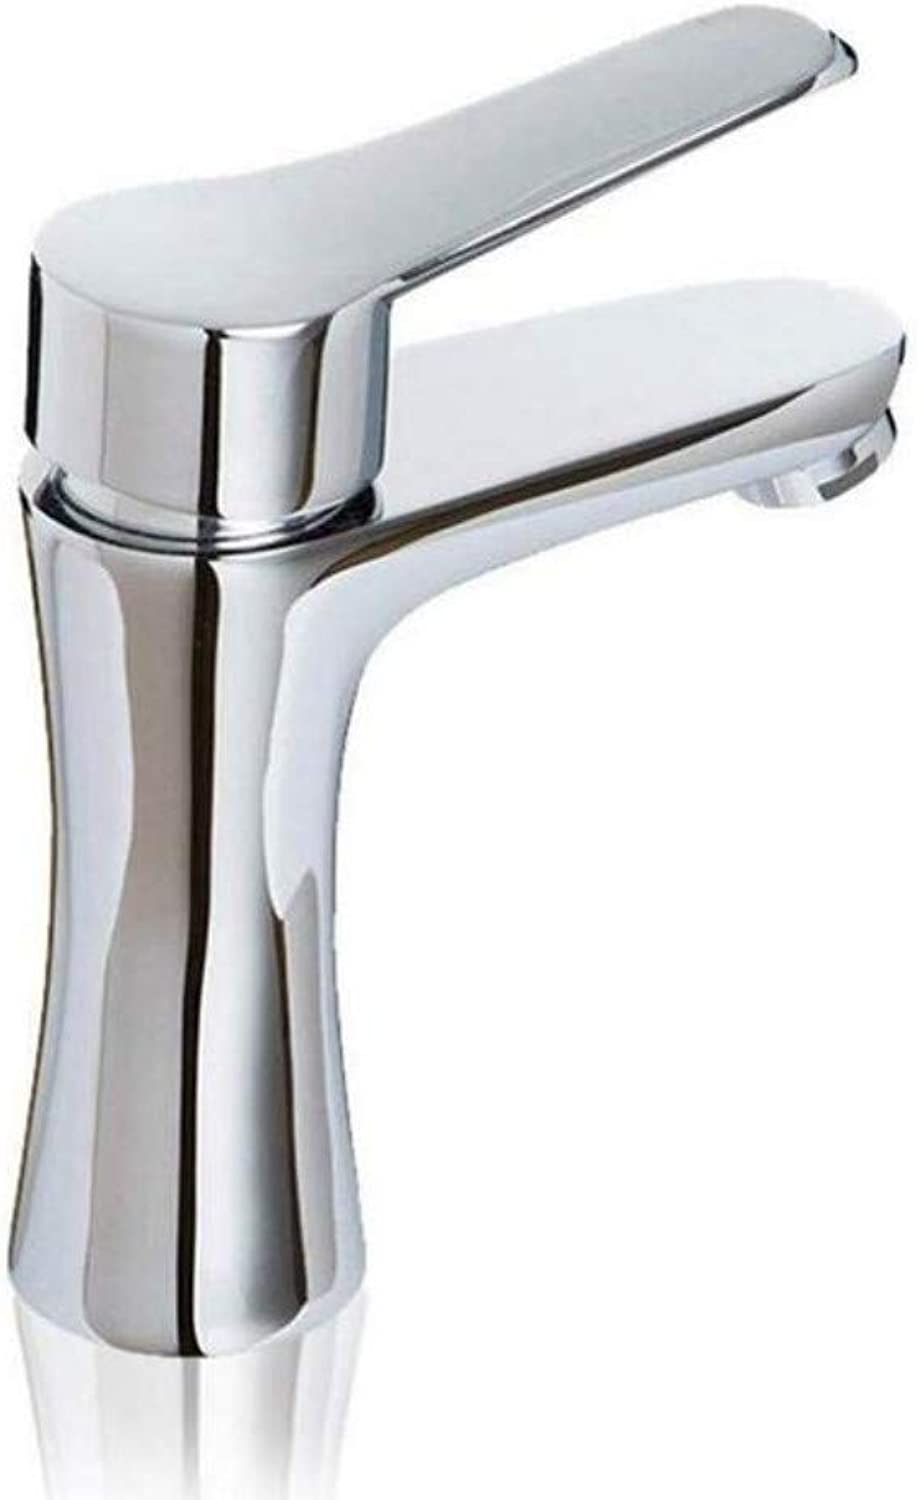 Faucet Lead-Free Square Innovationfaucet Hot and Cold Single Hole Faucet Silver Kitchen Sink Filter Faucet